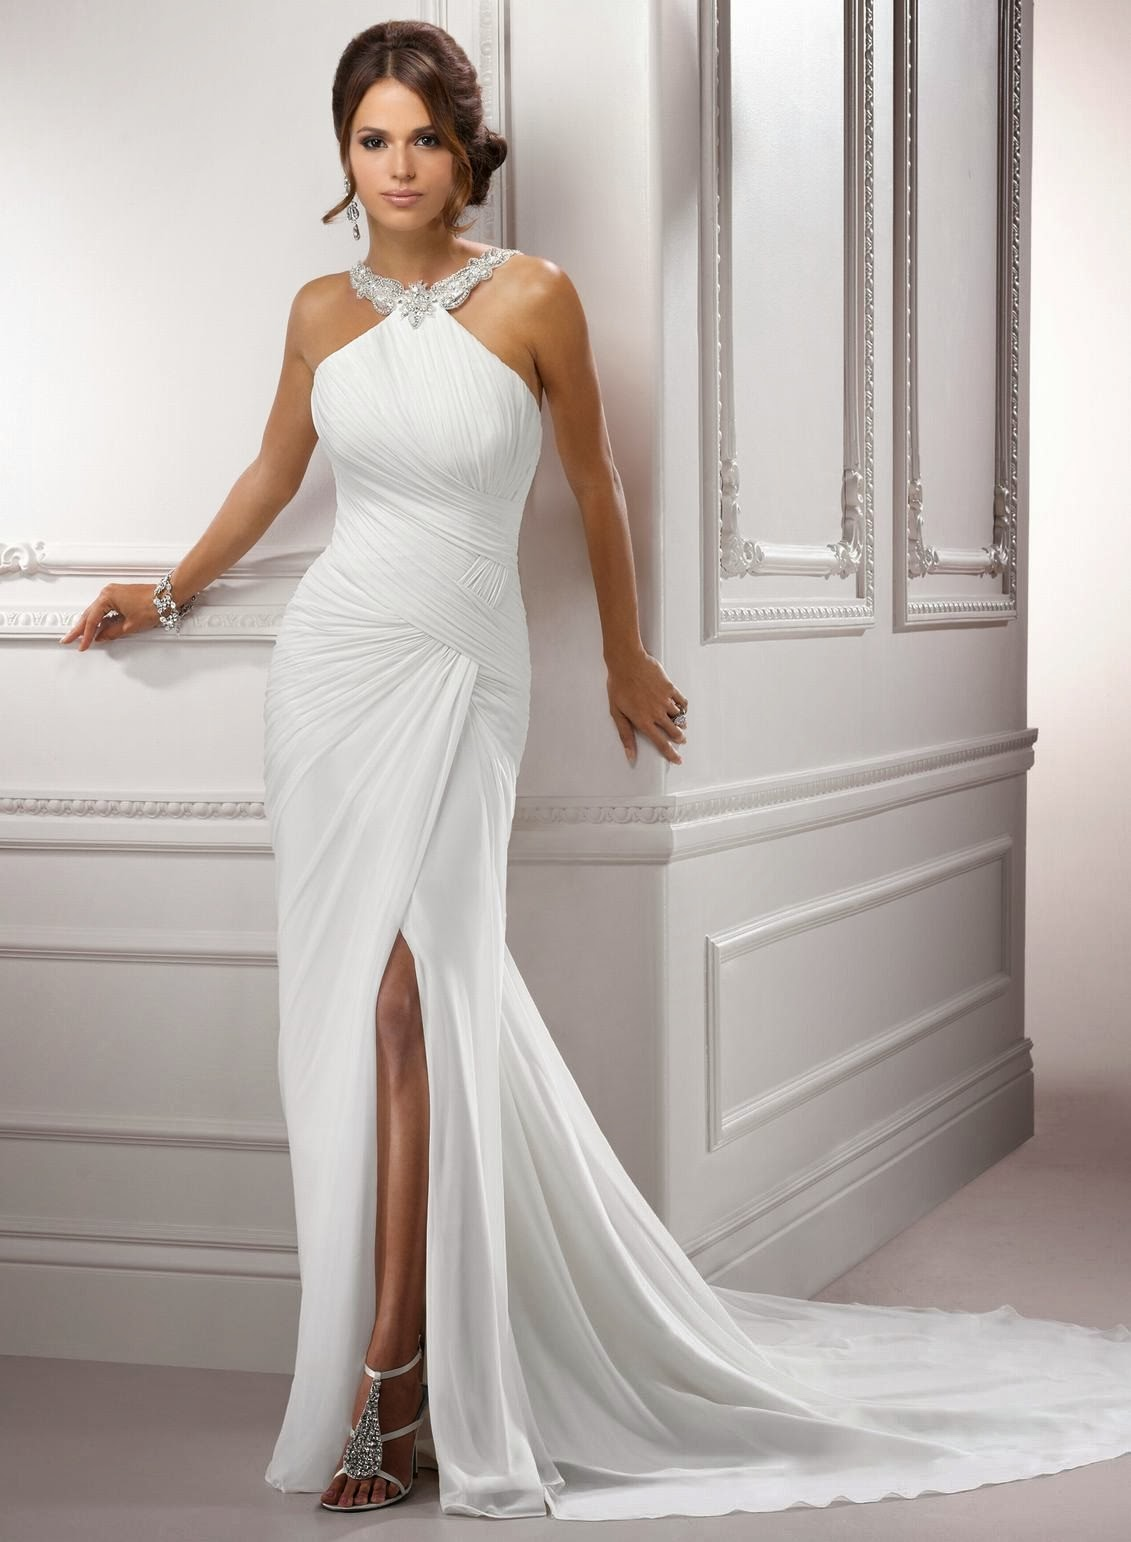 Short form fitting wedding dresses 2014 2015 fashion for Simple form fitting wedding dresses